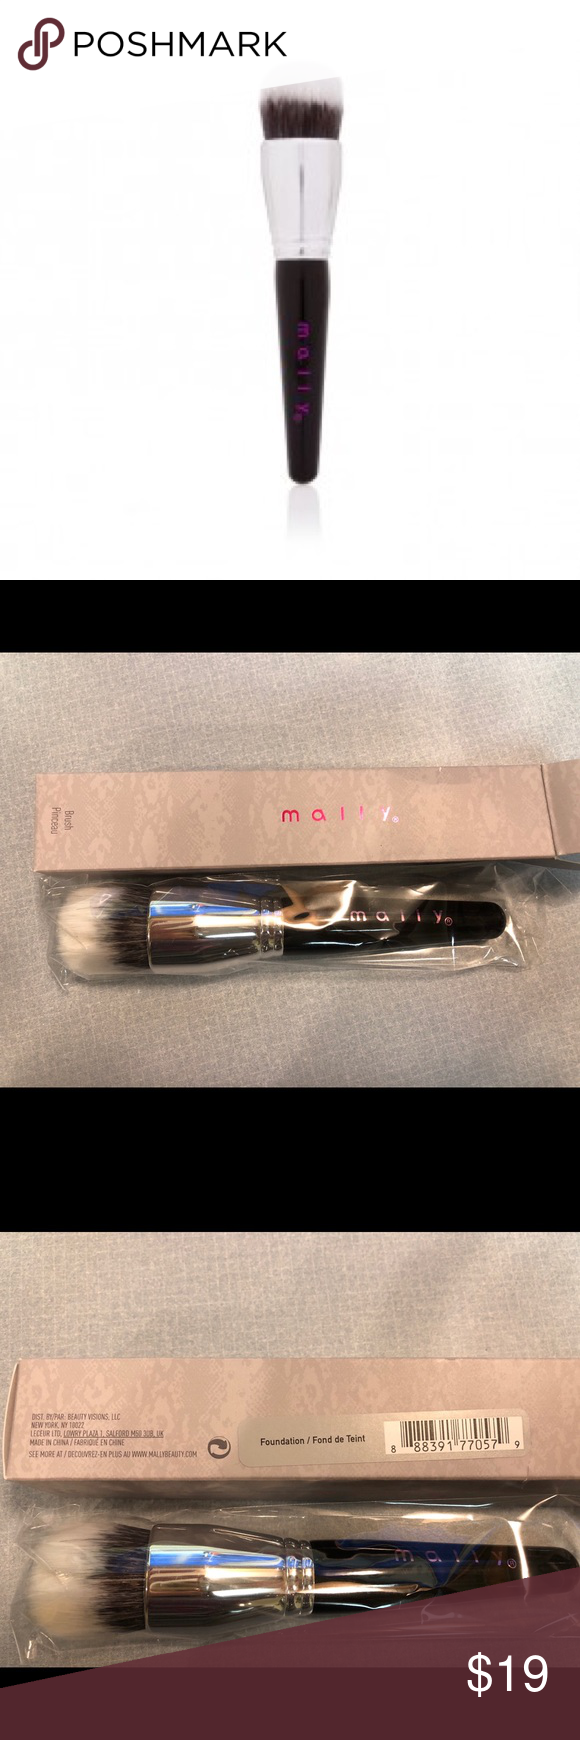 Mally Foundation Brush Boutique Mally makeup, Mally